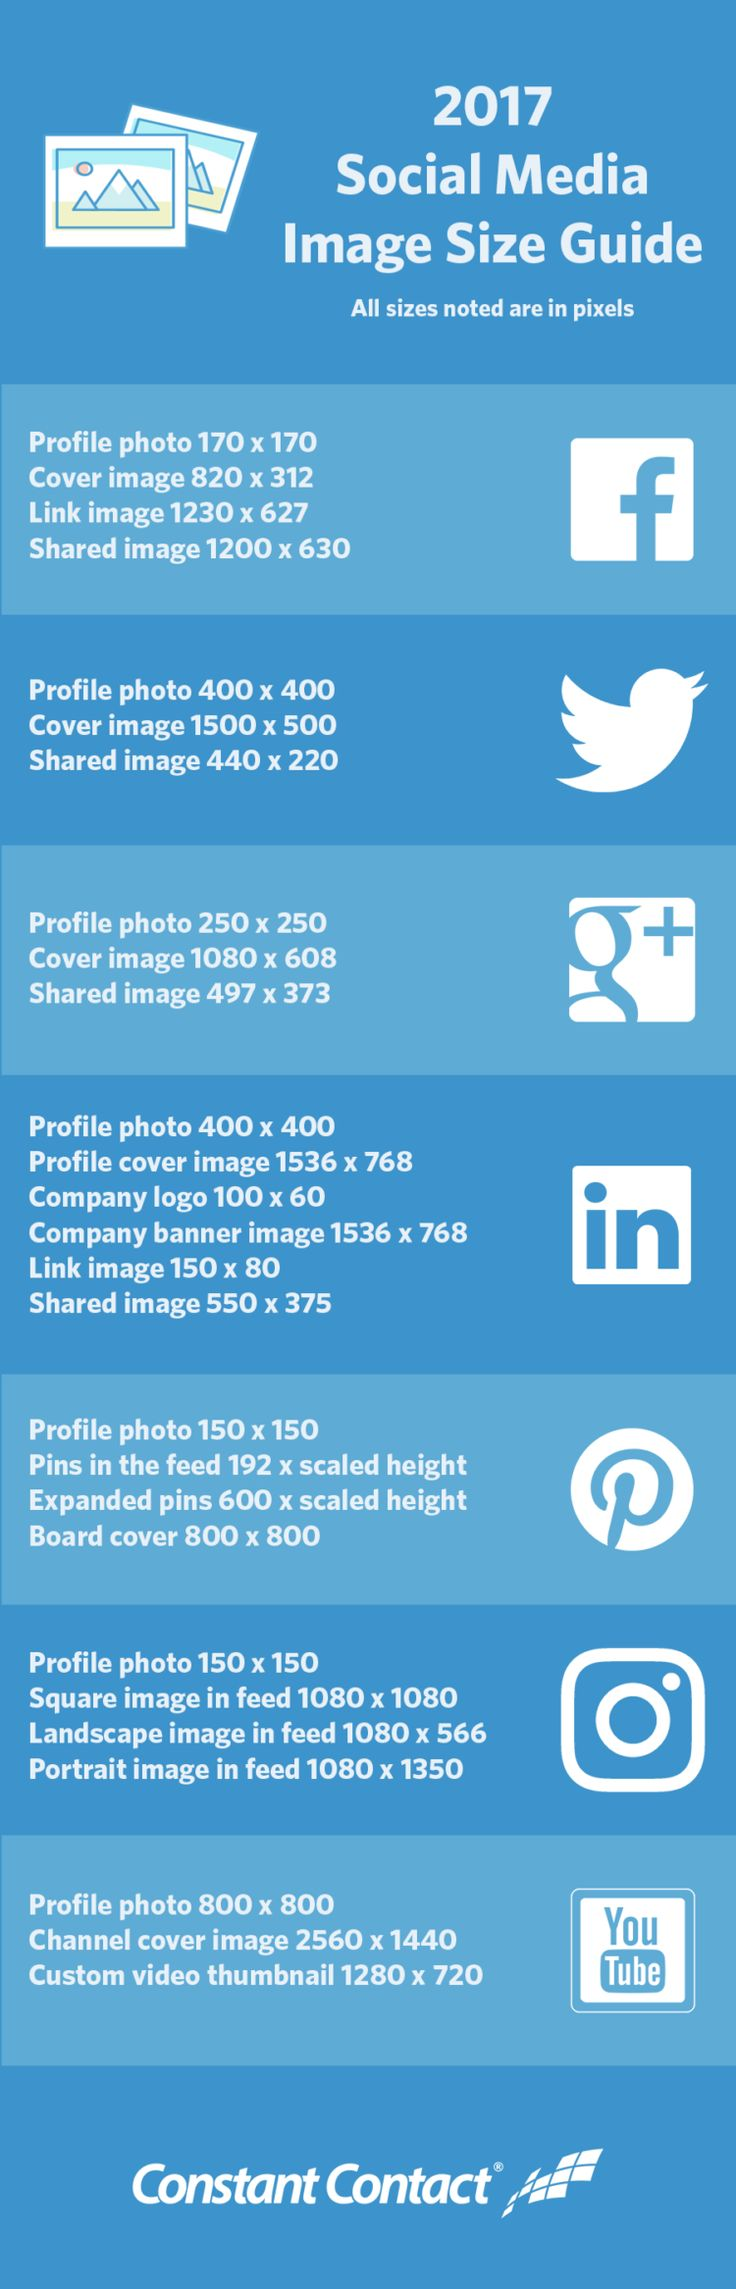 Share on facebook tweet this post pin images to pinterest - 2017 Social Media Image Sizes Cheat Sheet